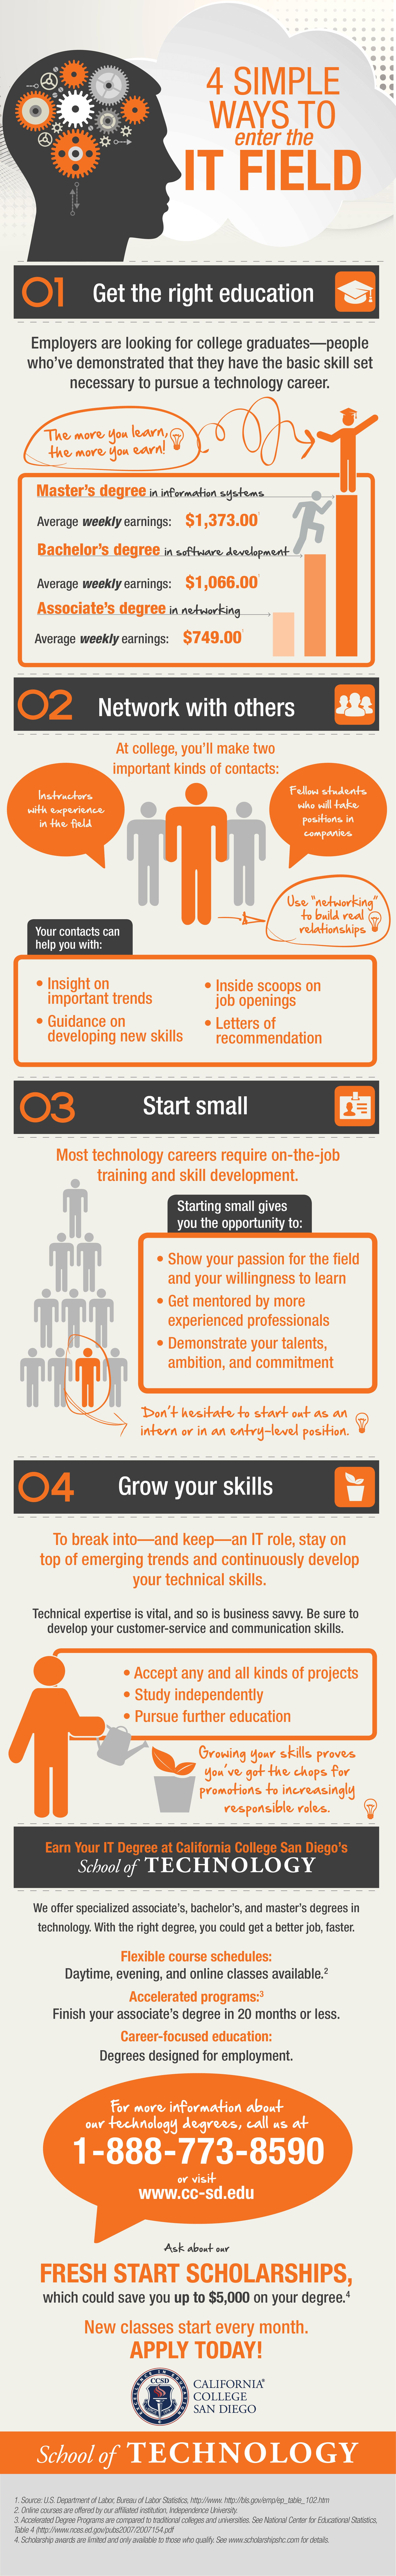 It Career 4 Bytes Of Advice To Get Started Infographic Technology Careers Information Technology Latest Computer Technology